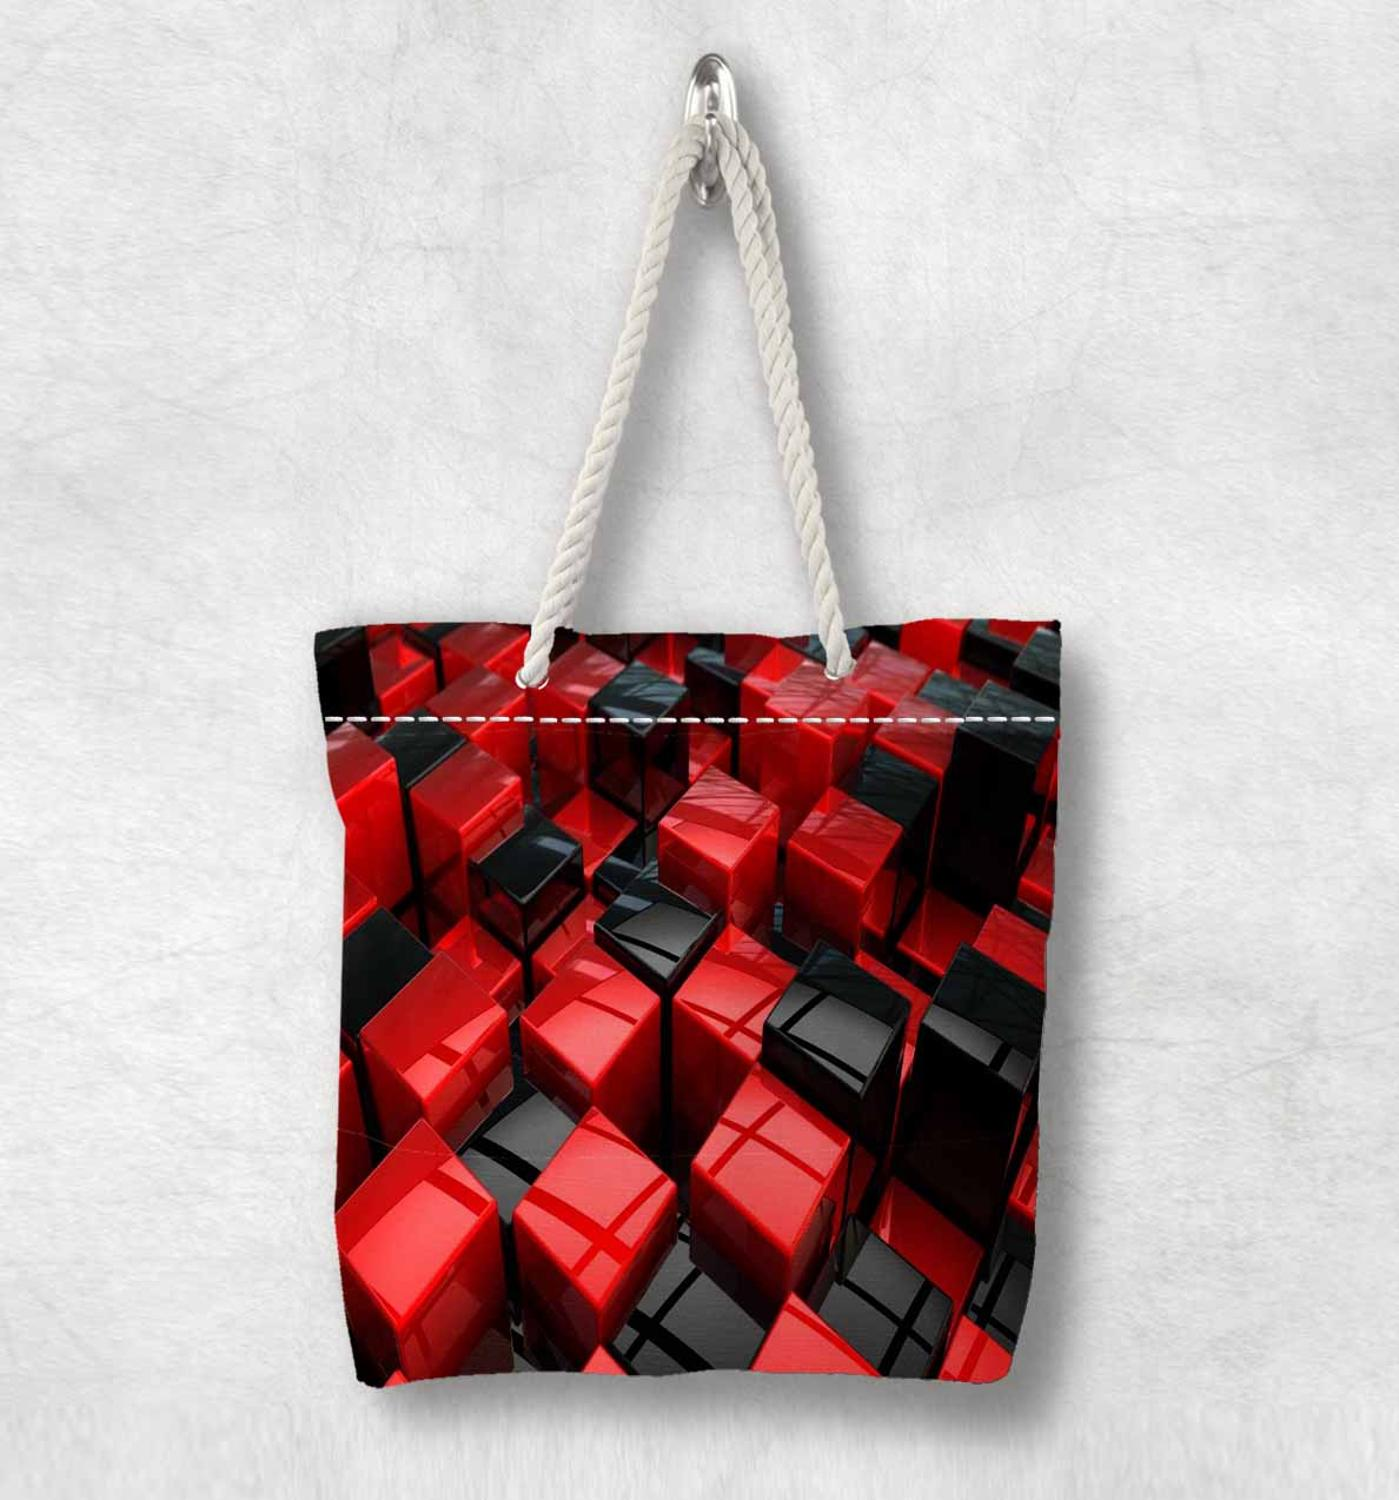 Else Black Red Abstract Geometric Boxes New Fashion White Rope Handle Canvas Bag Cotton Canvas Zippered Tote Bag Shoulder Bag